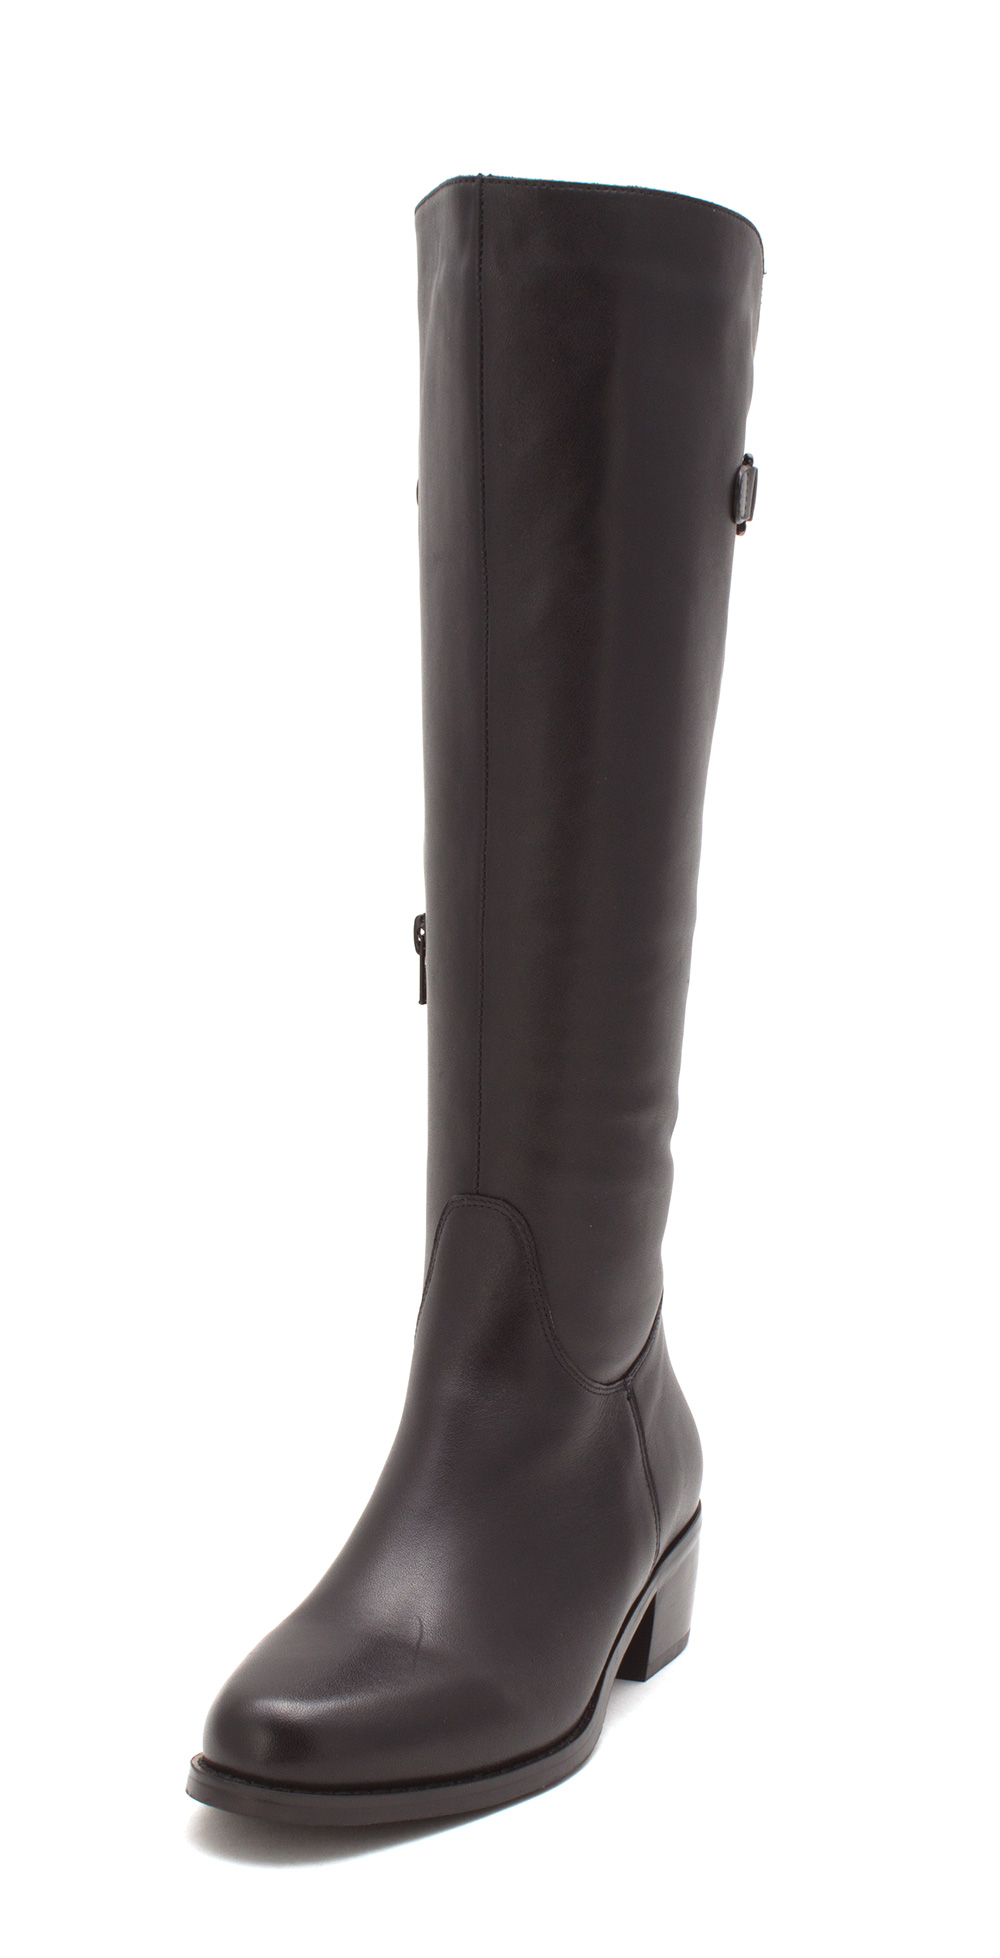 VANELi Womens Vail Leather Almond Toe Knee High Fashion Boots, Black, Size 8.0